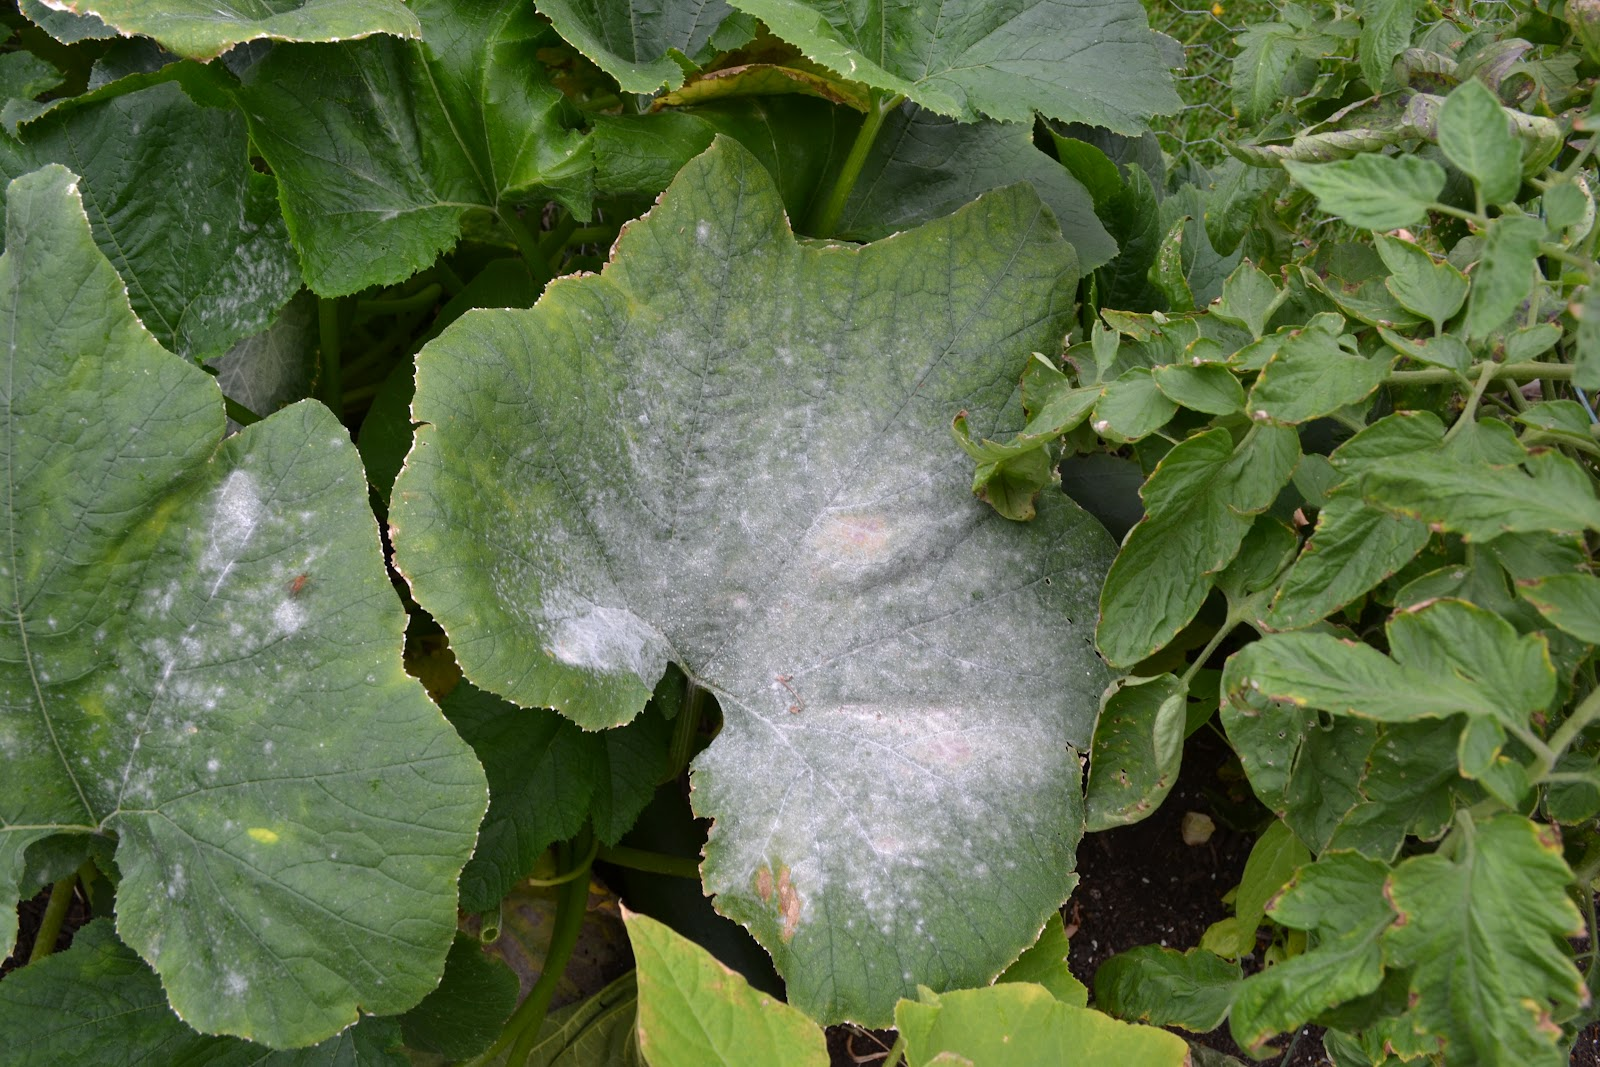 Zucchini plant leaf starting to die from powdery mildew attack.